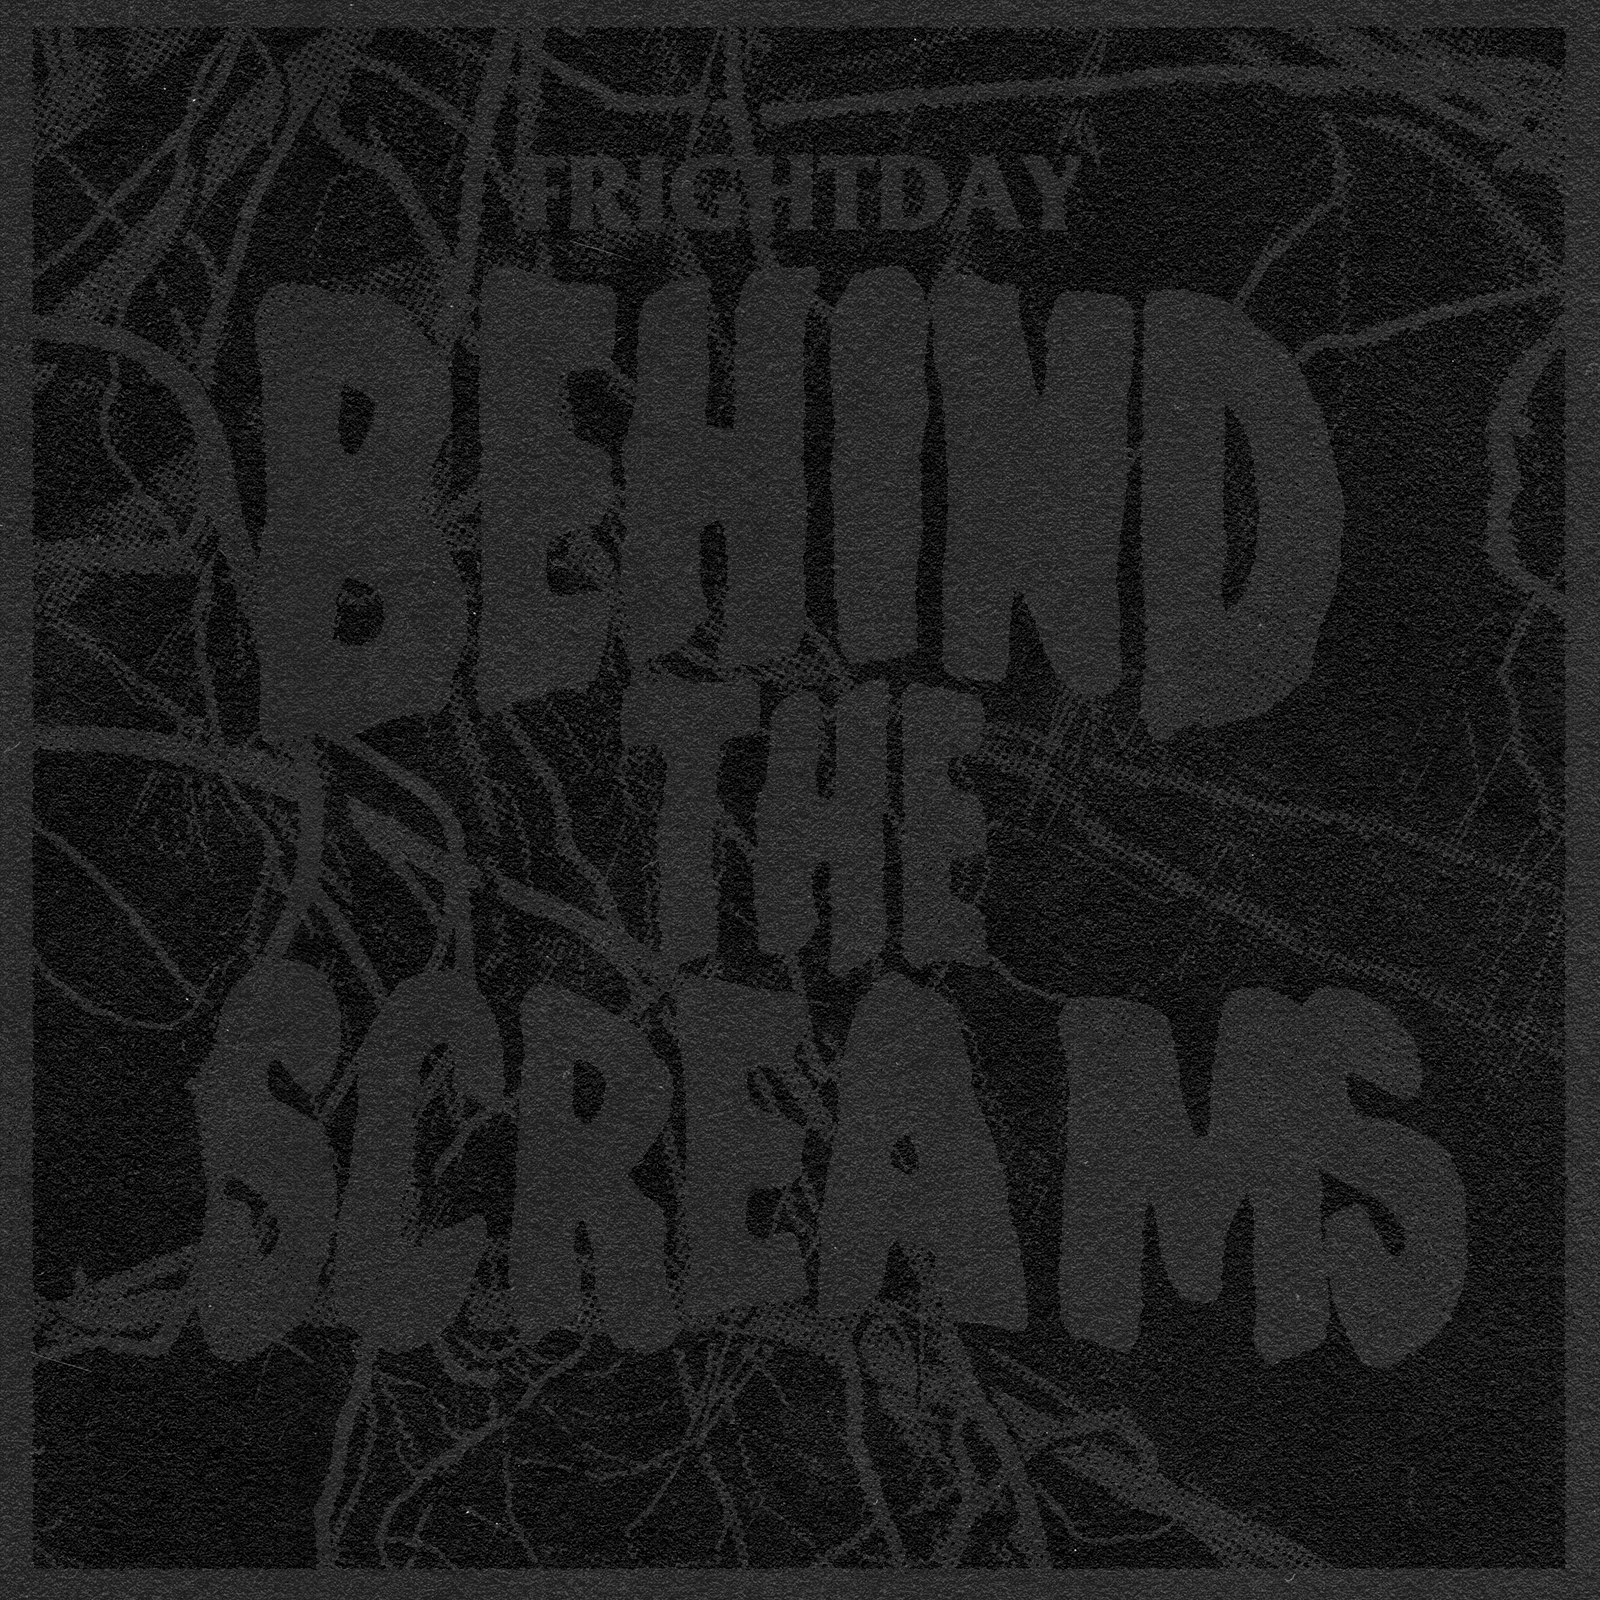 Behind the Screams: Halloween Programming Nostalgia (Excerpt)